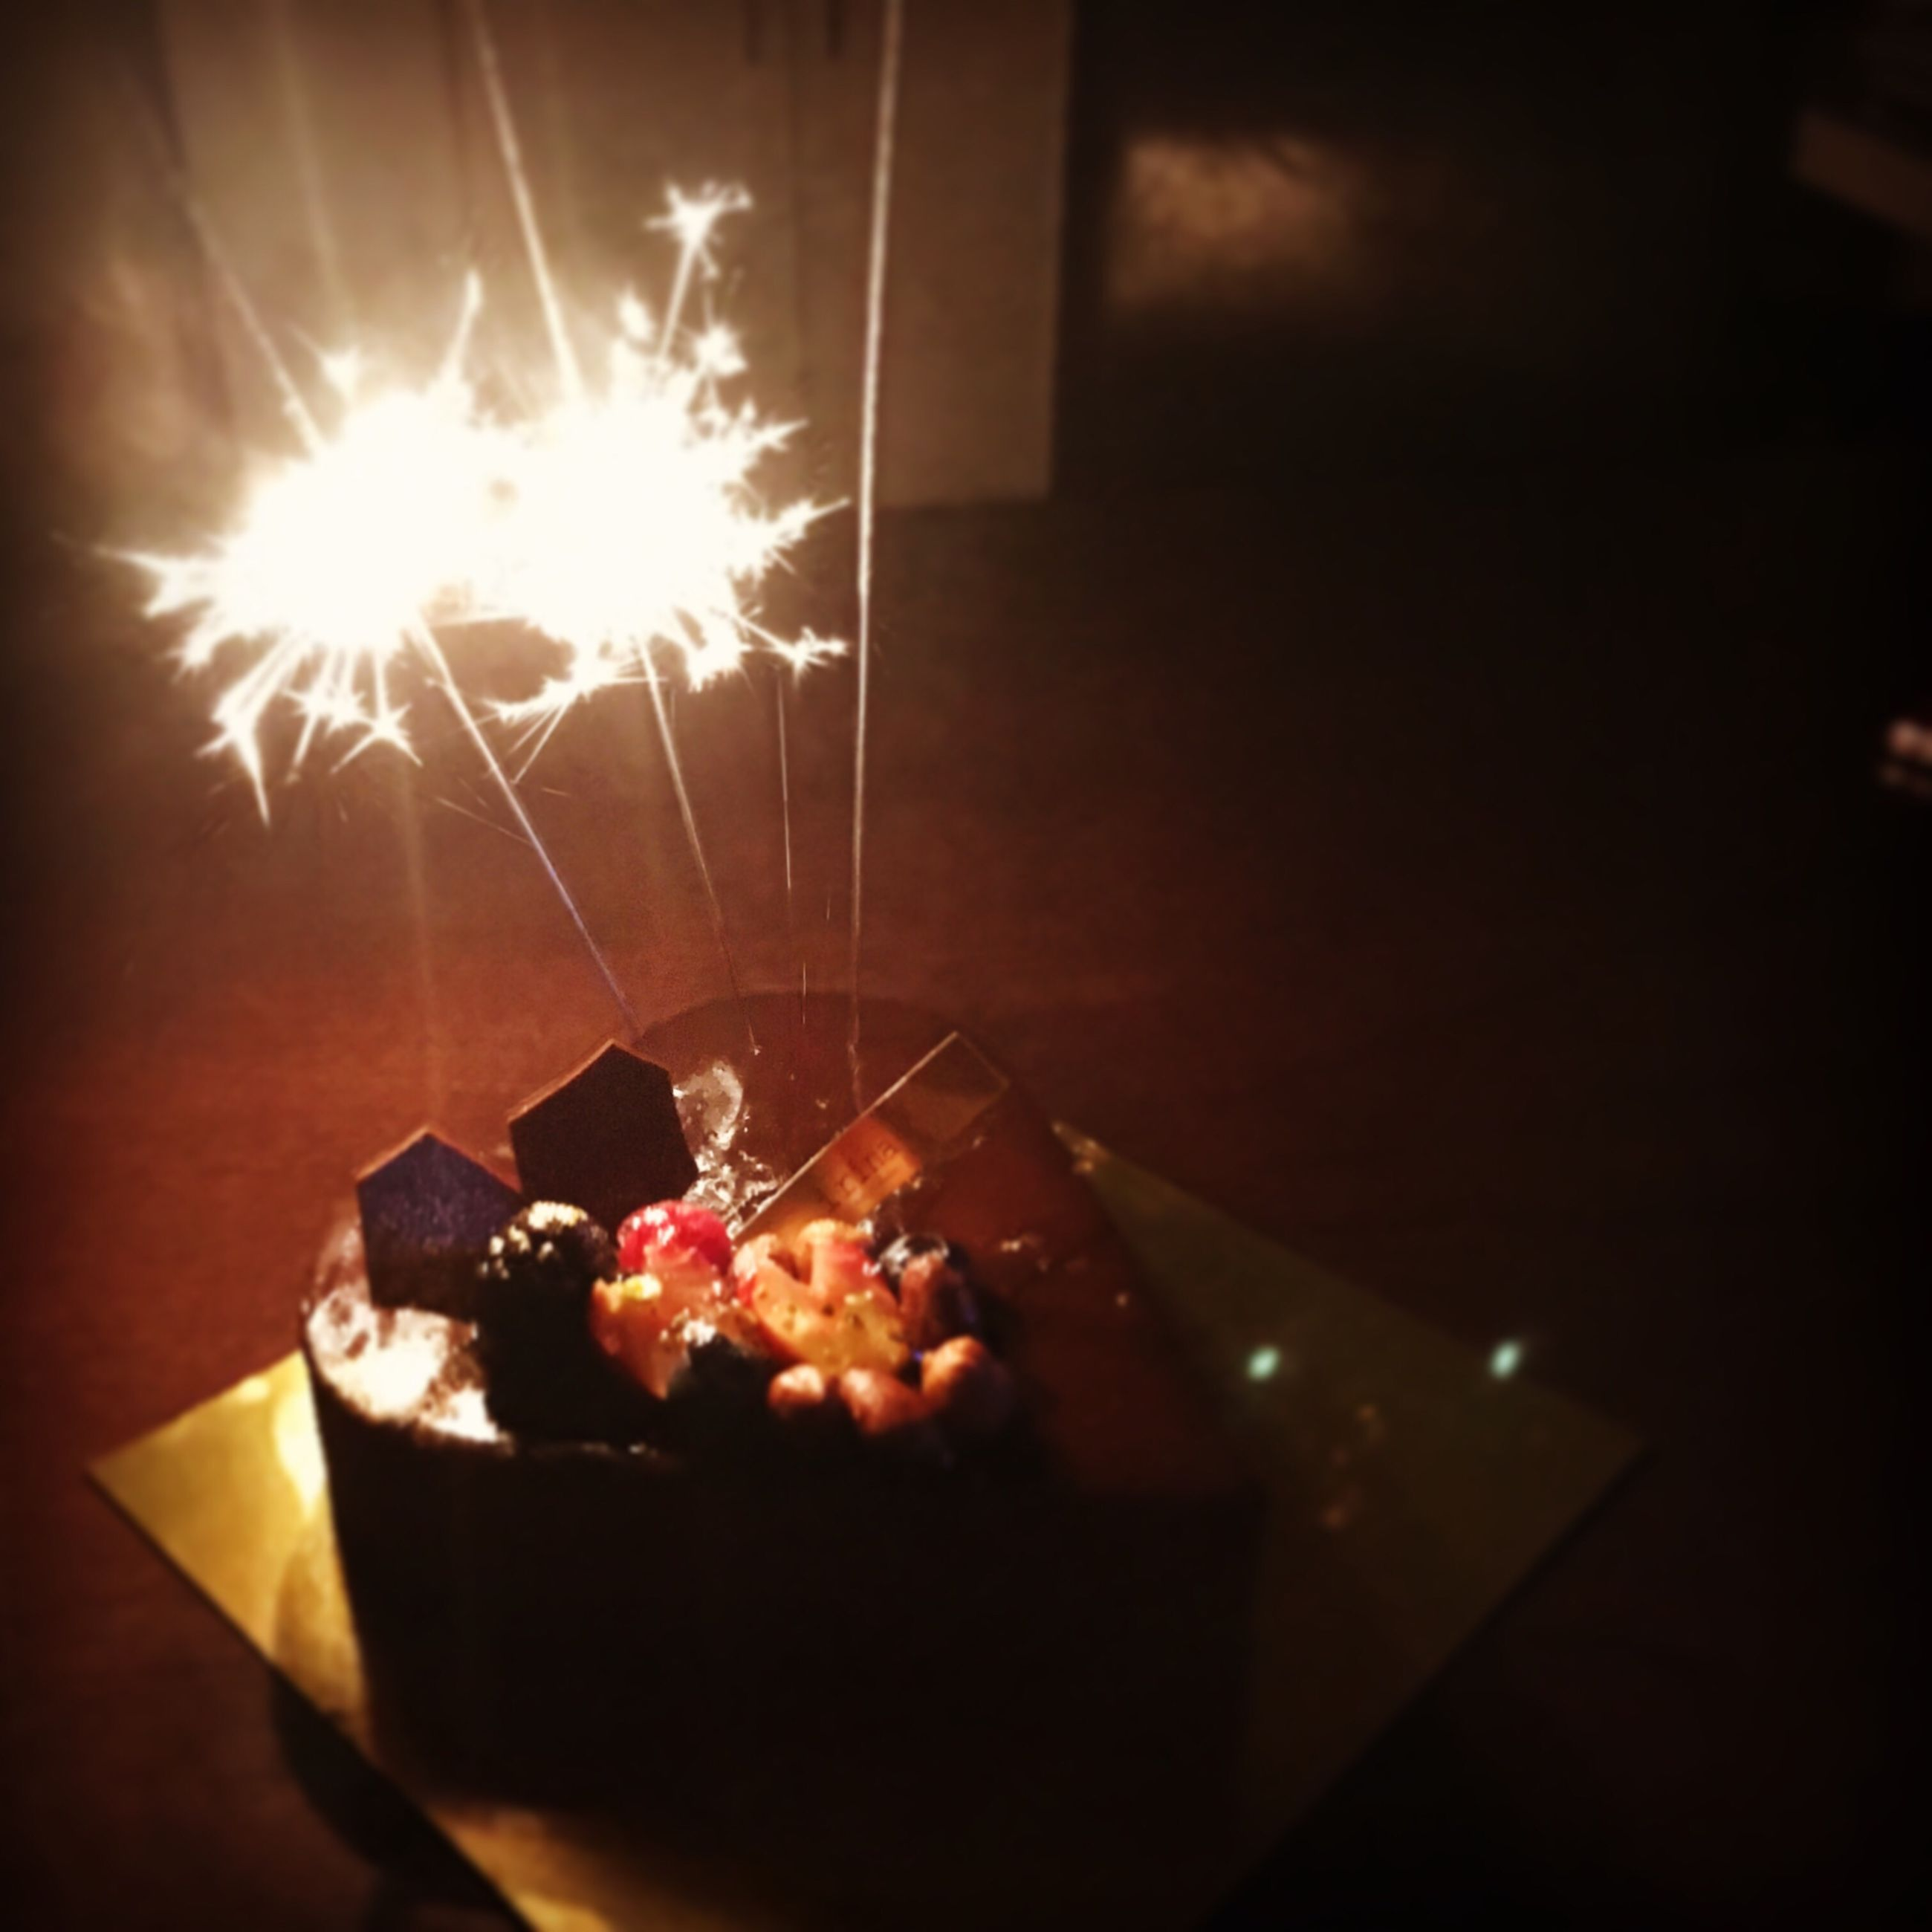 food and drink, food, indoors, burning, no people, freshness, home interior, illuminated, flame, close-up, night, ready-to-eat